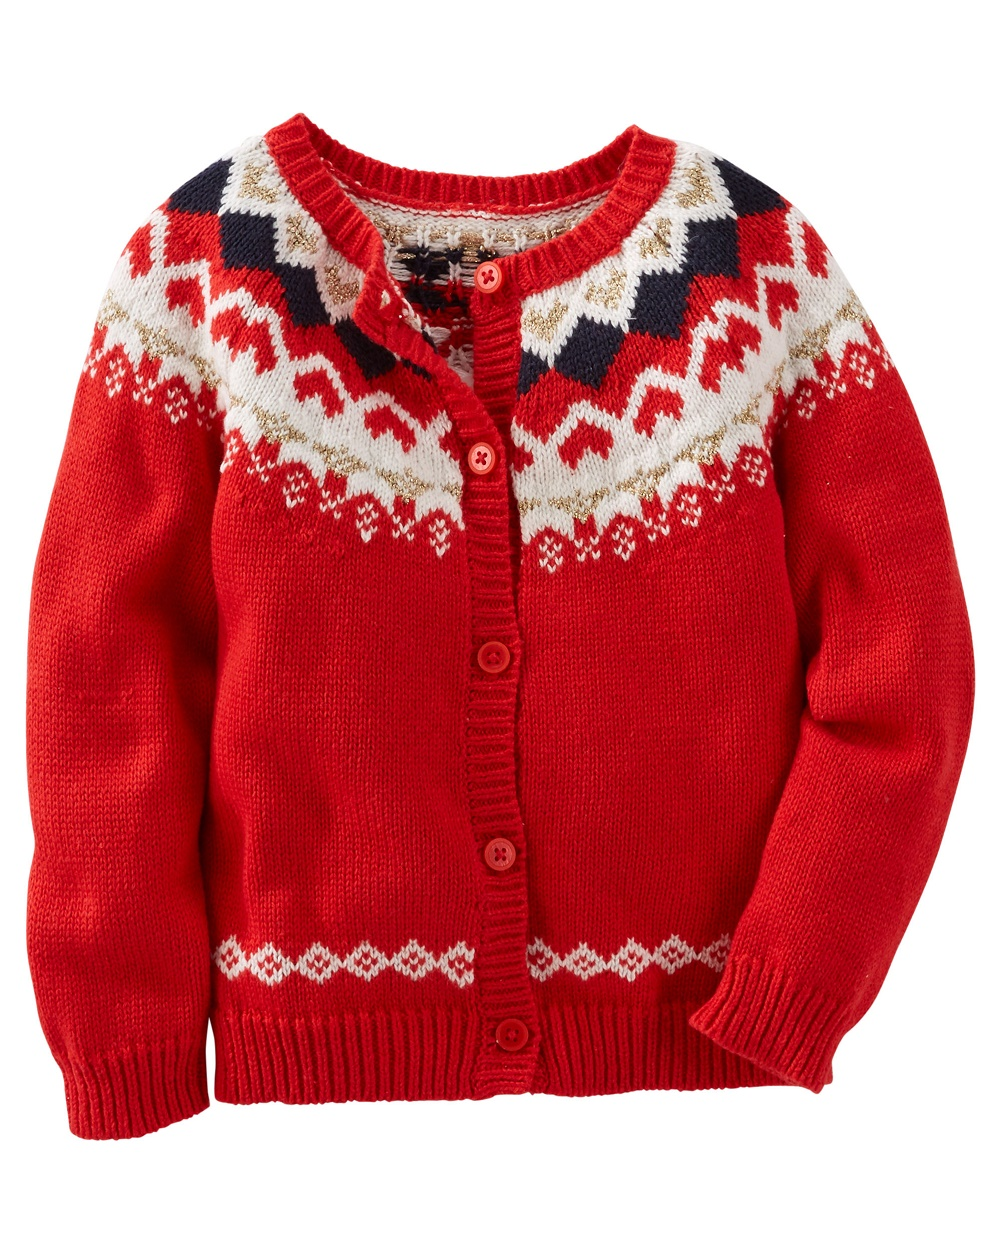 OshKosh B'gosh Baby Girls' Sparkle Fair Isle Sweater, 9 Months